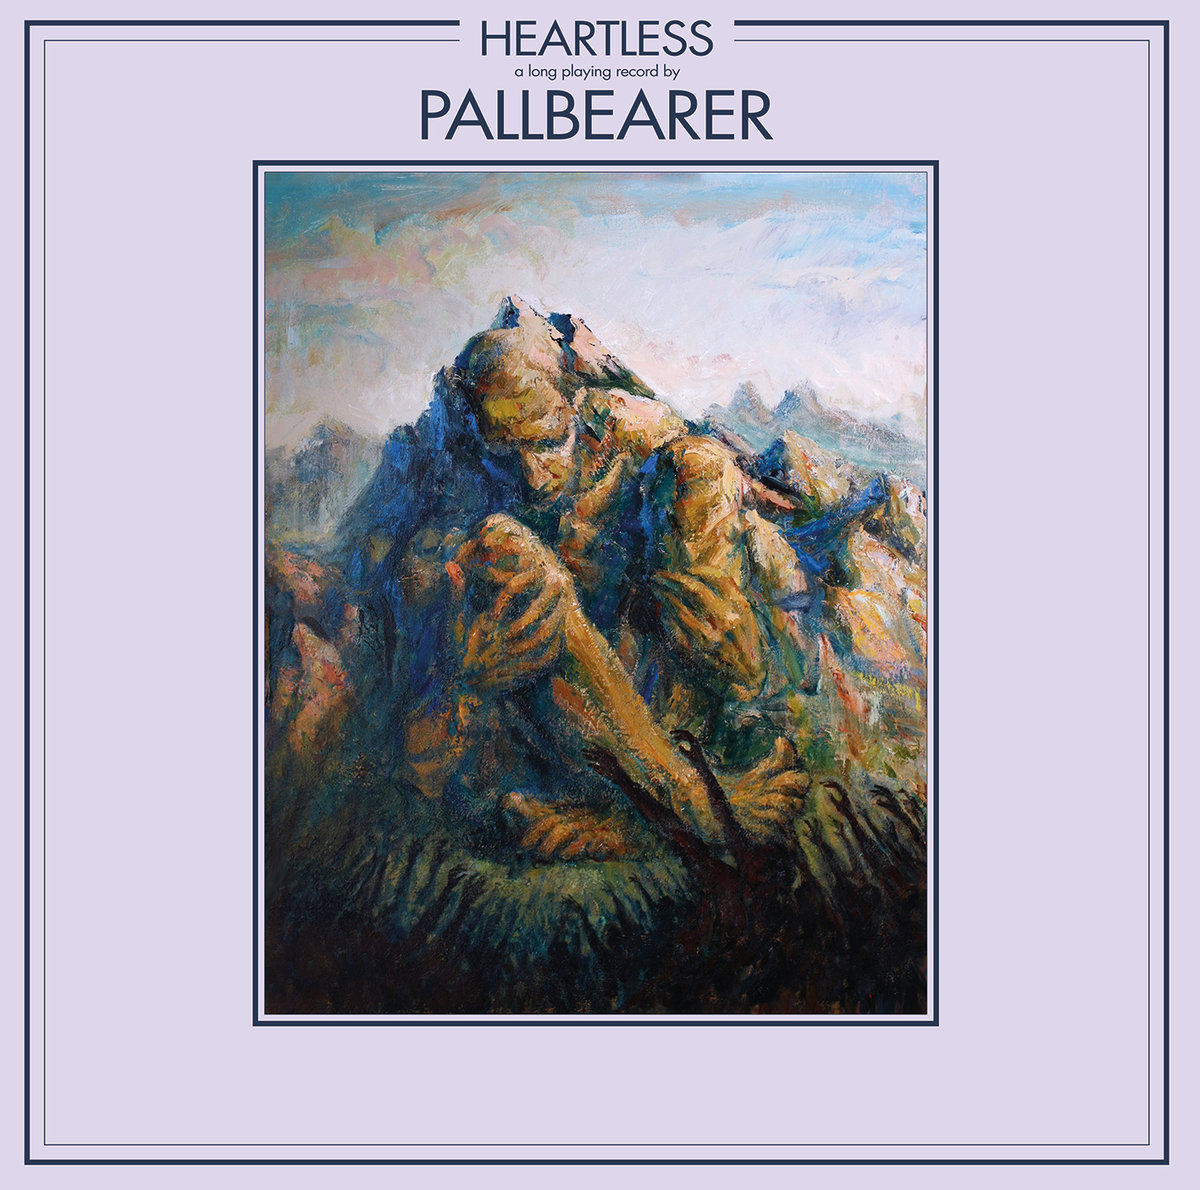 Pallbearer Heartless new track Thorns